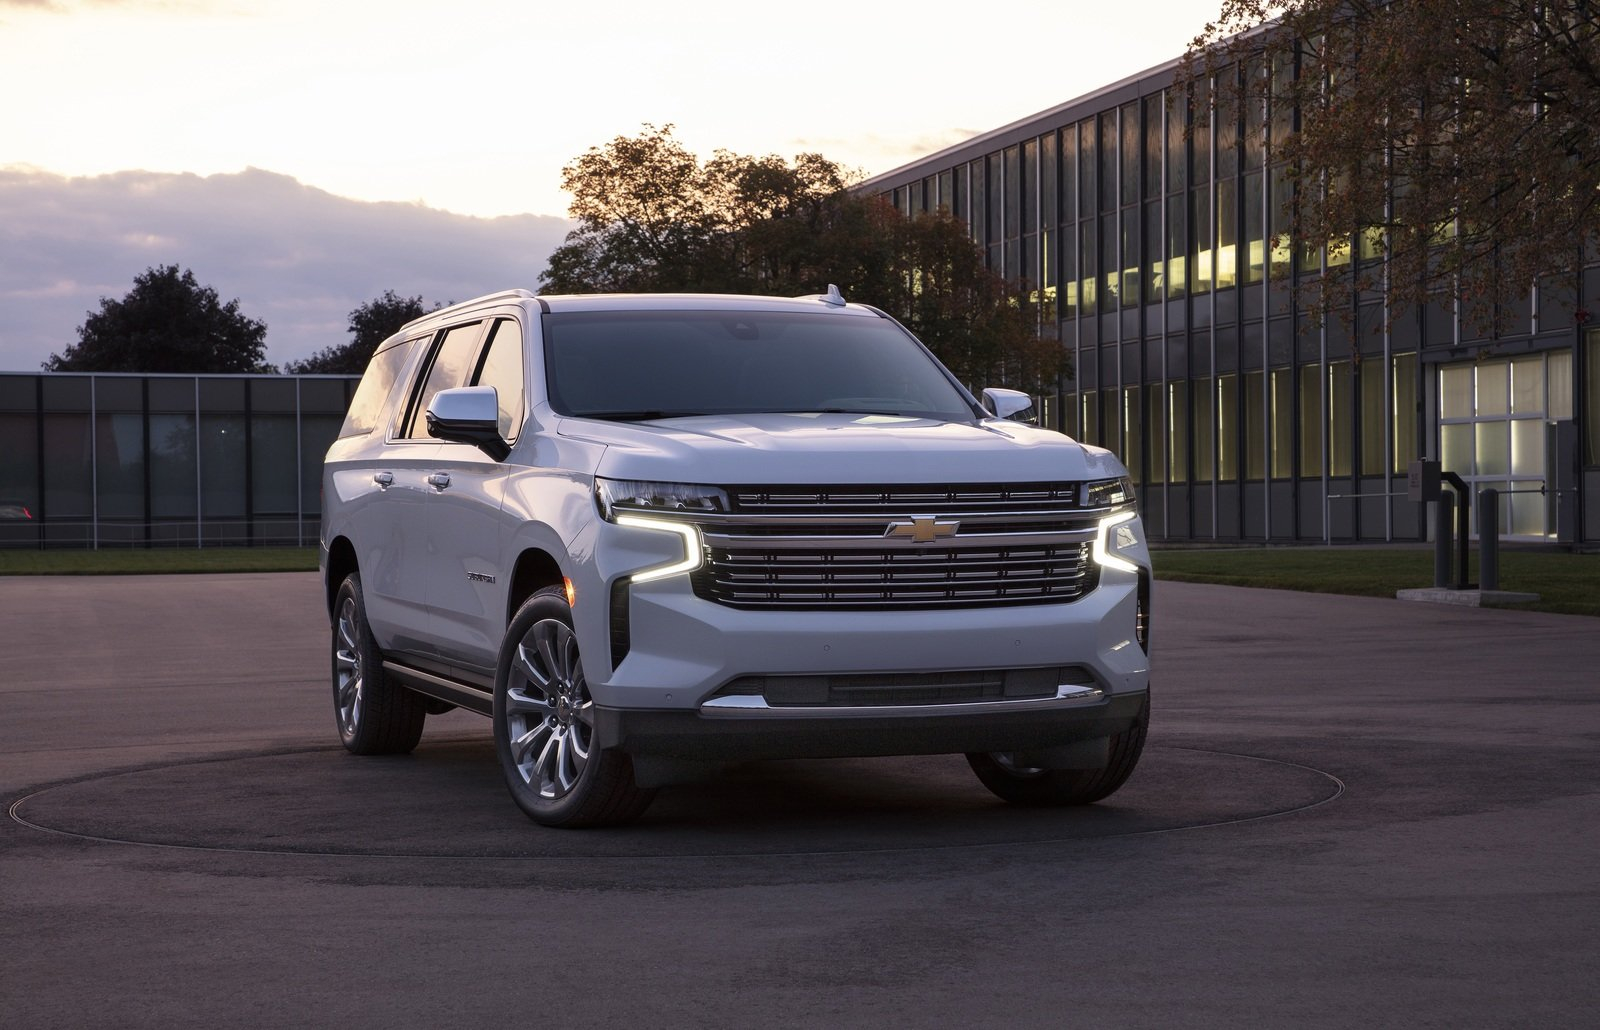 2021 Chevy Suburban 2021 Chevy Spark Price, Pictures, Base Model